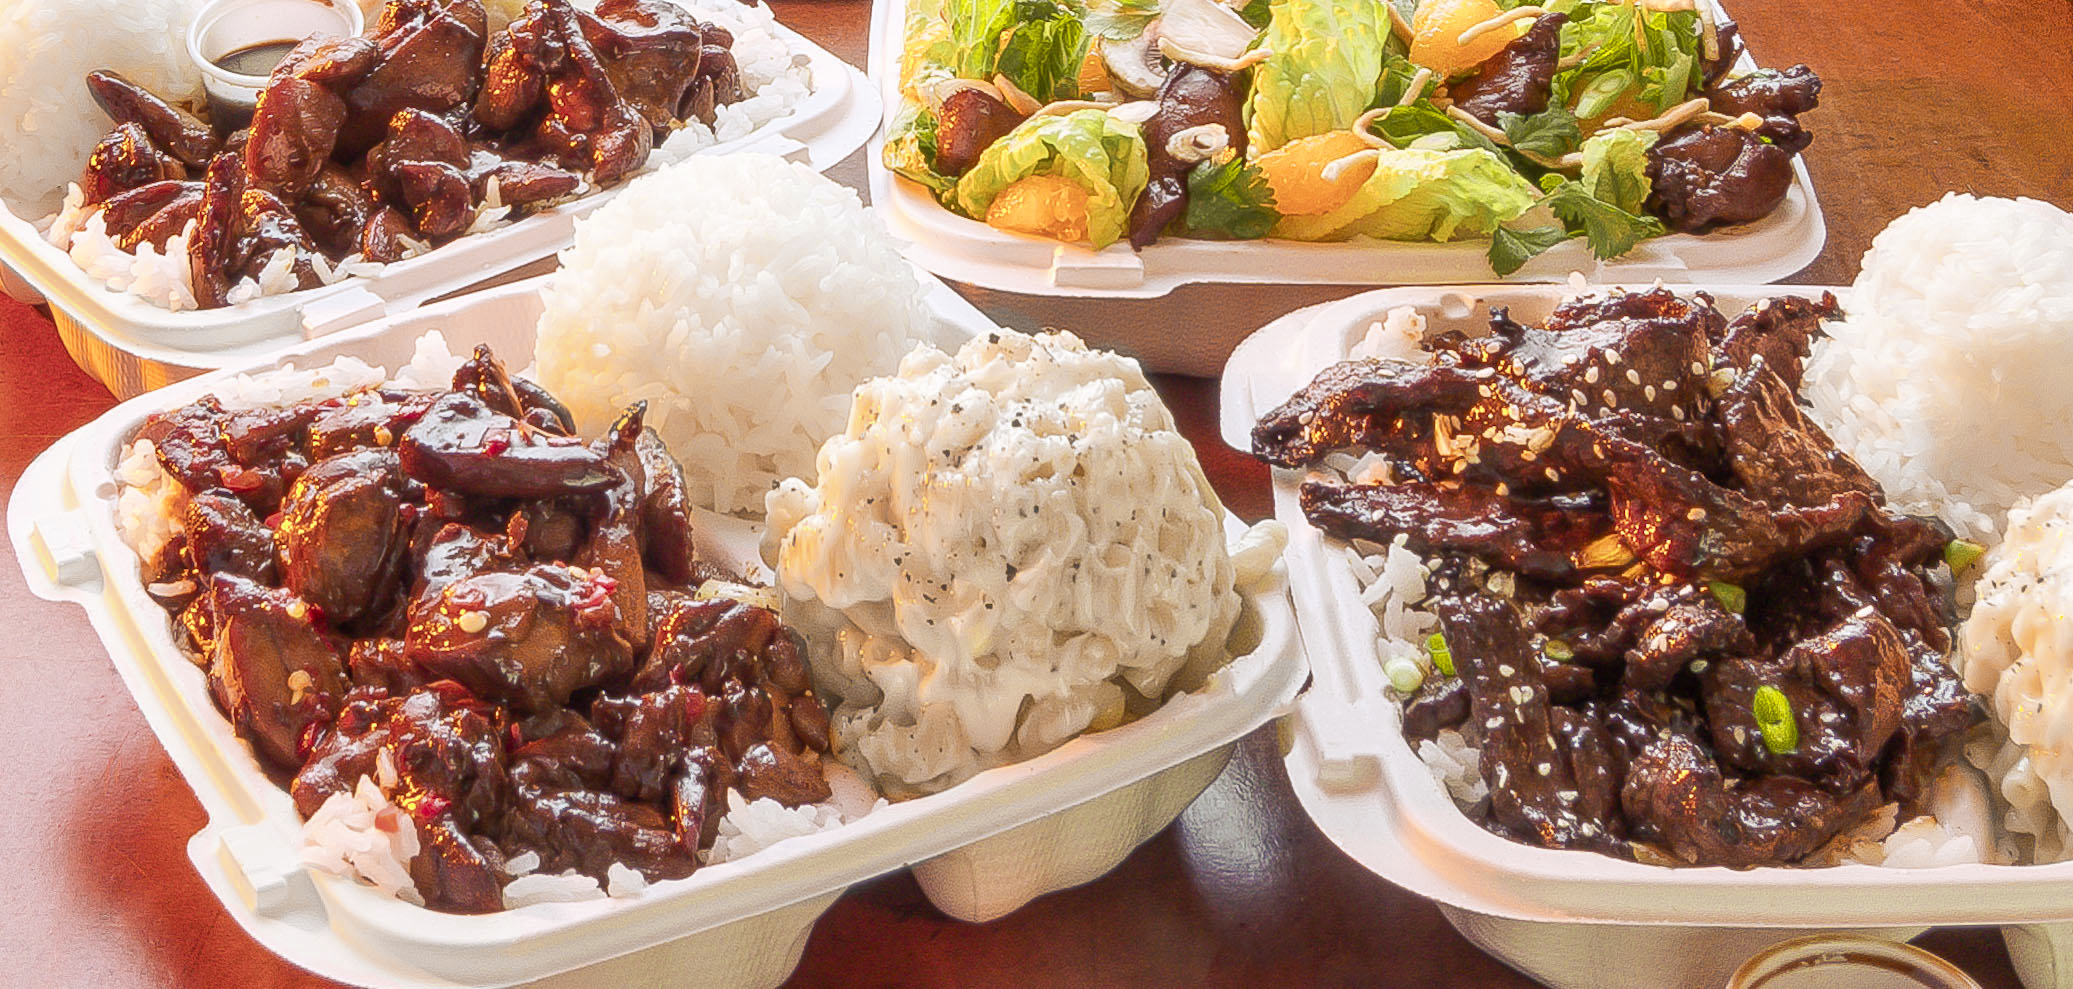 Clockwise from top: Huli Huli Chicken, Chinese Chicken Salad, Honolulu Beef, Mauna Loa Chicken